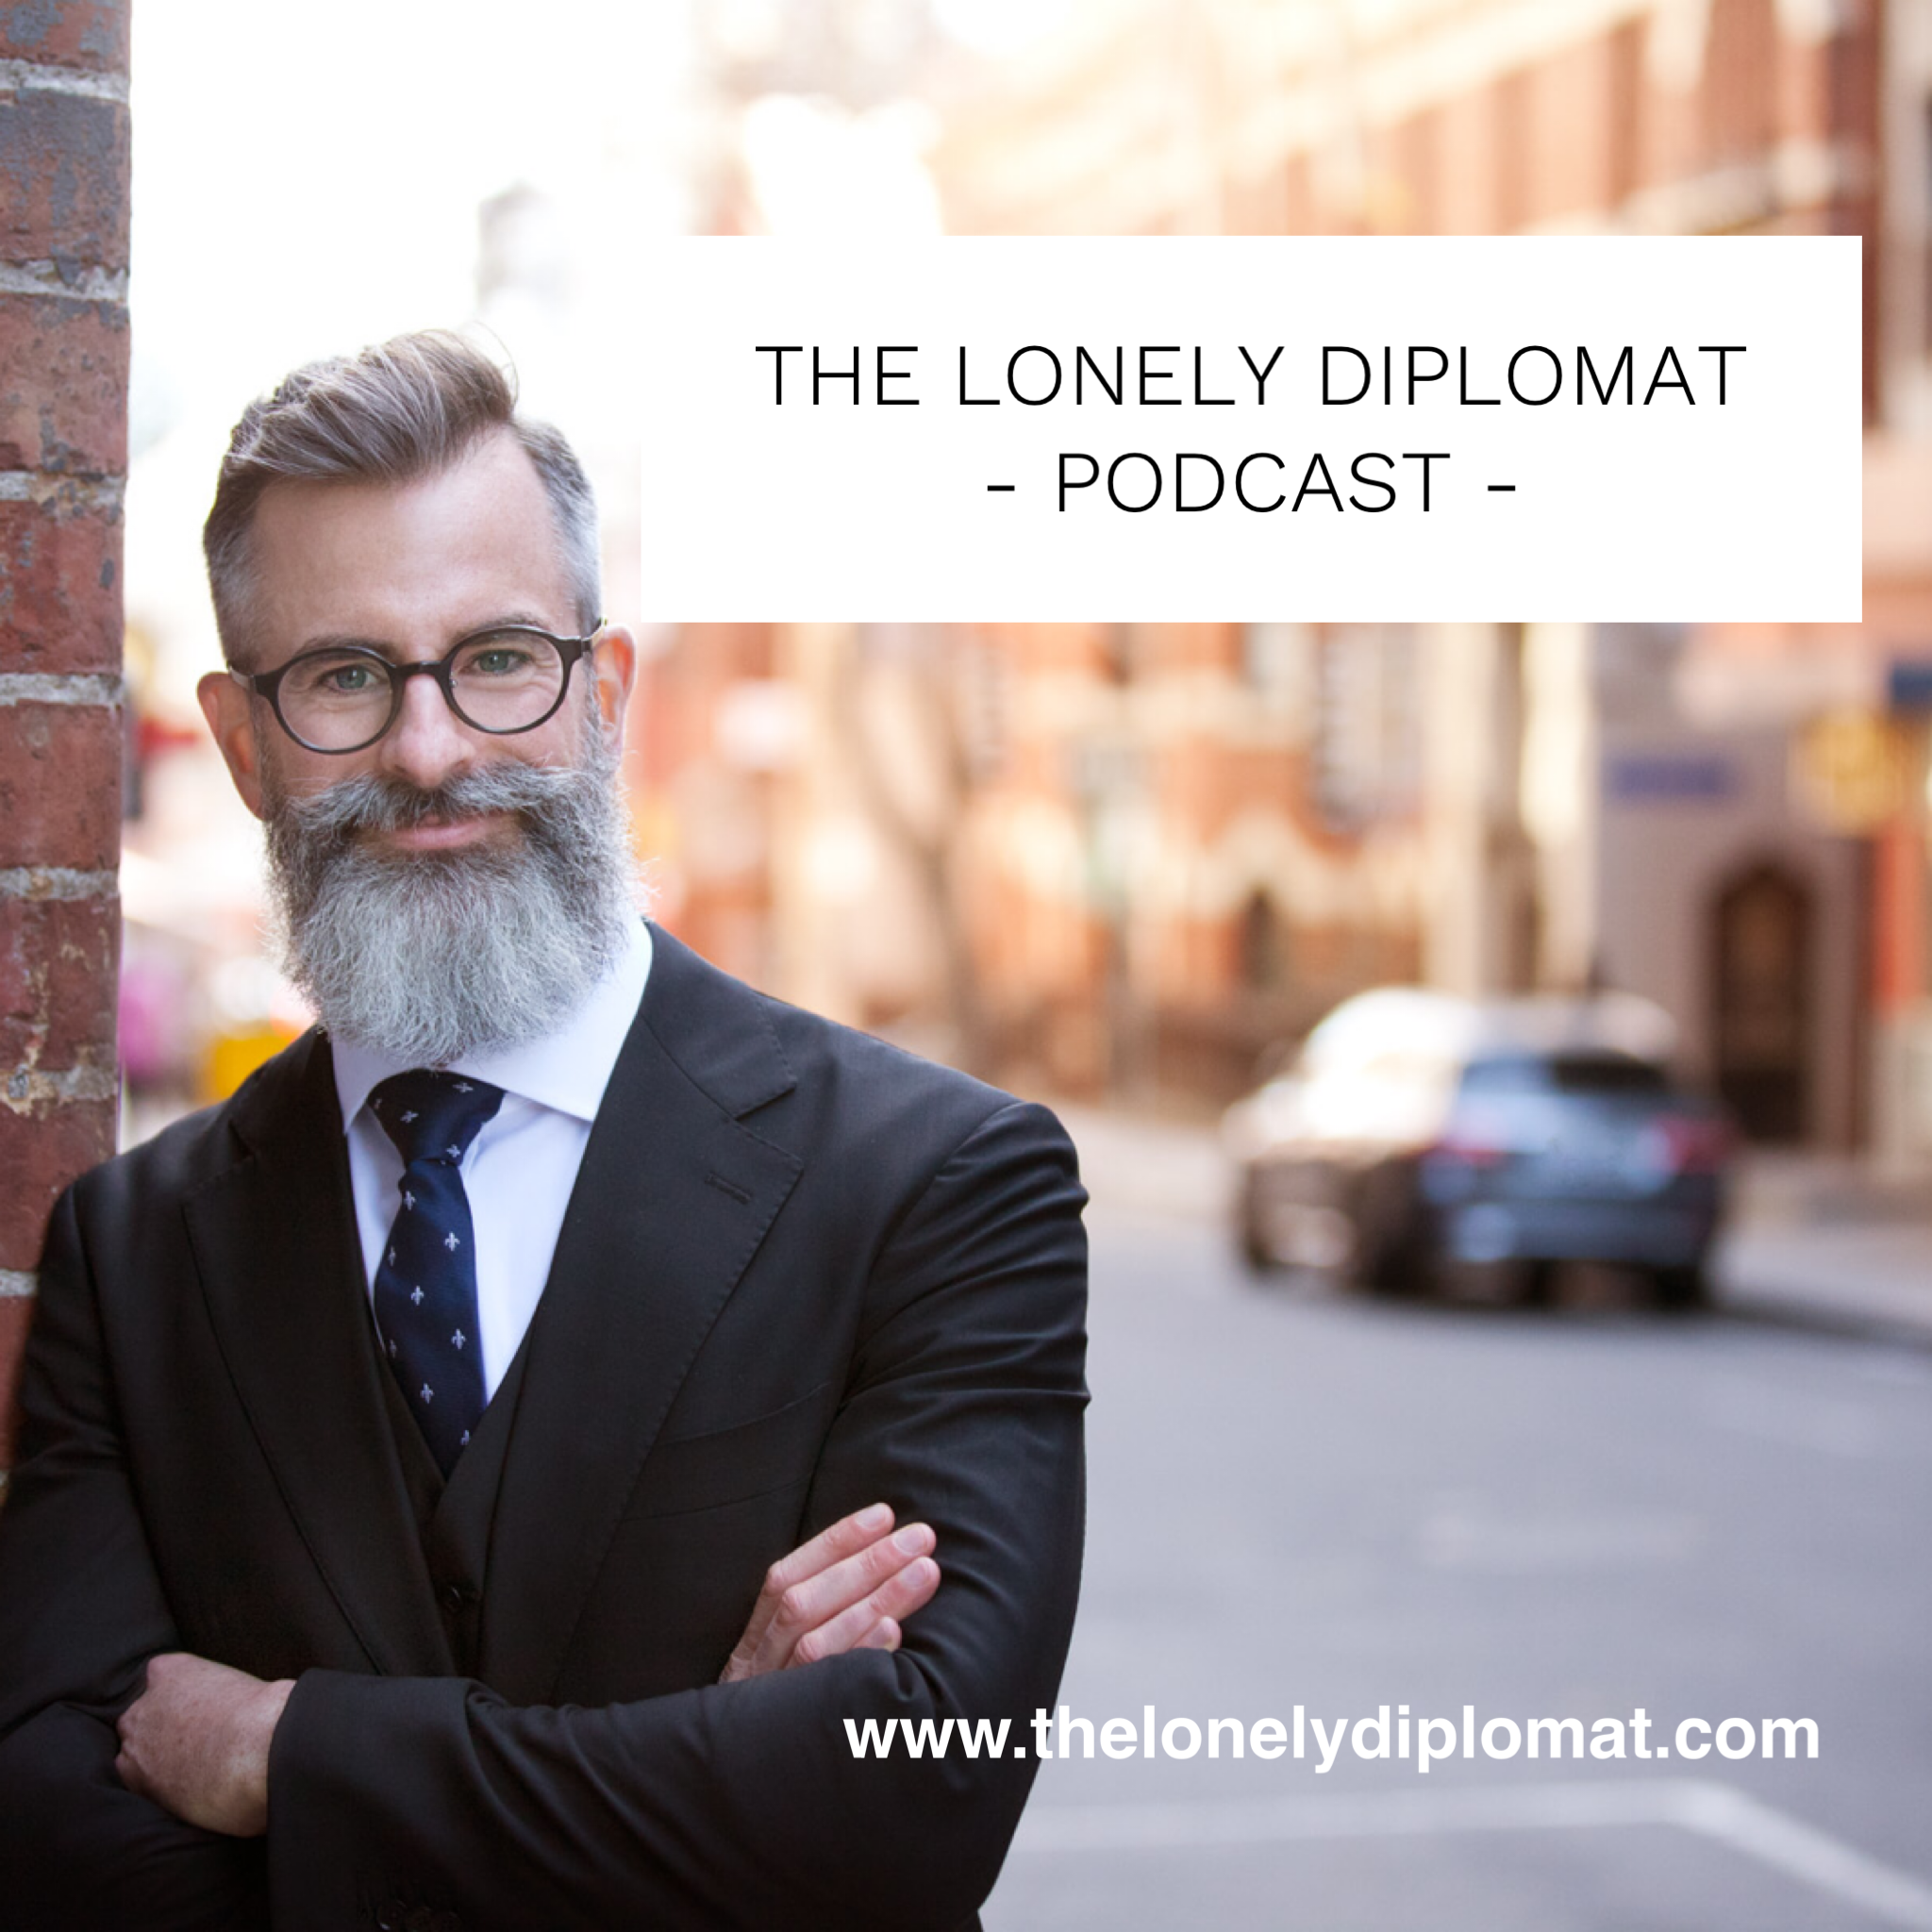 The Lonely Diplomat podcast